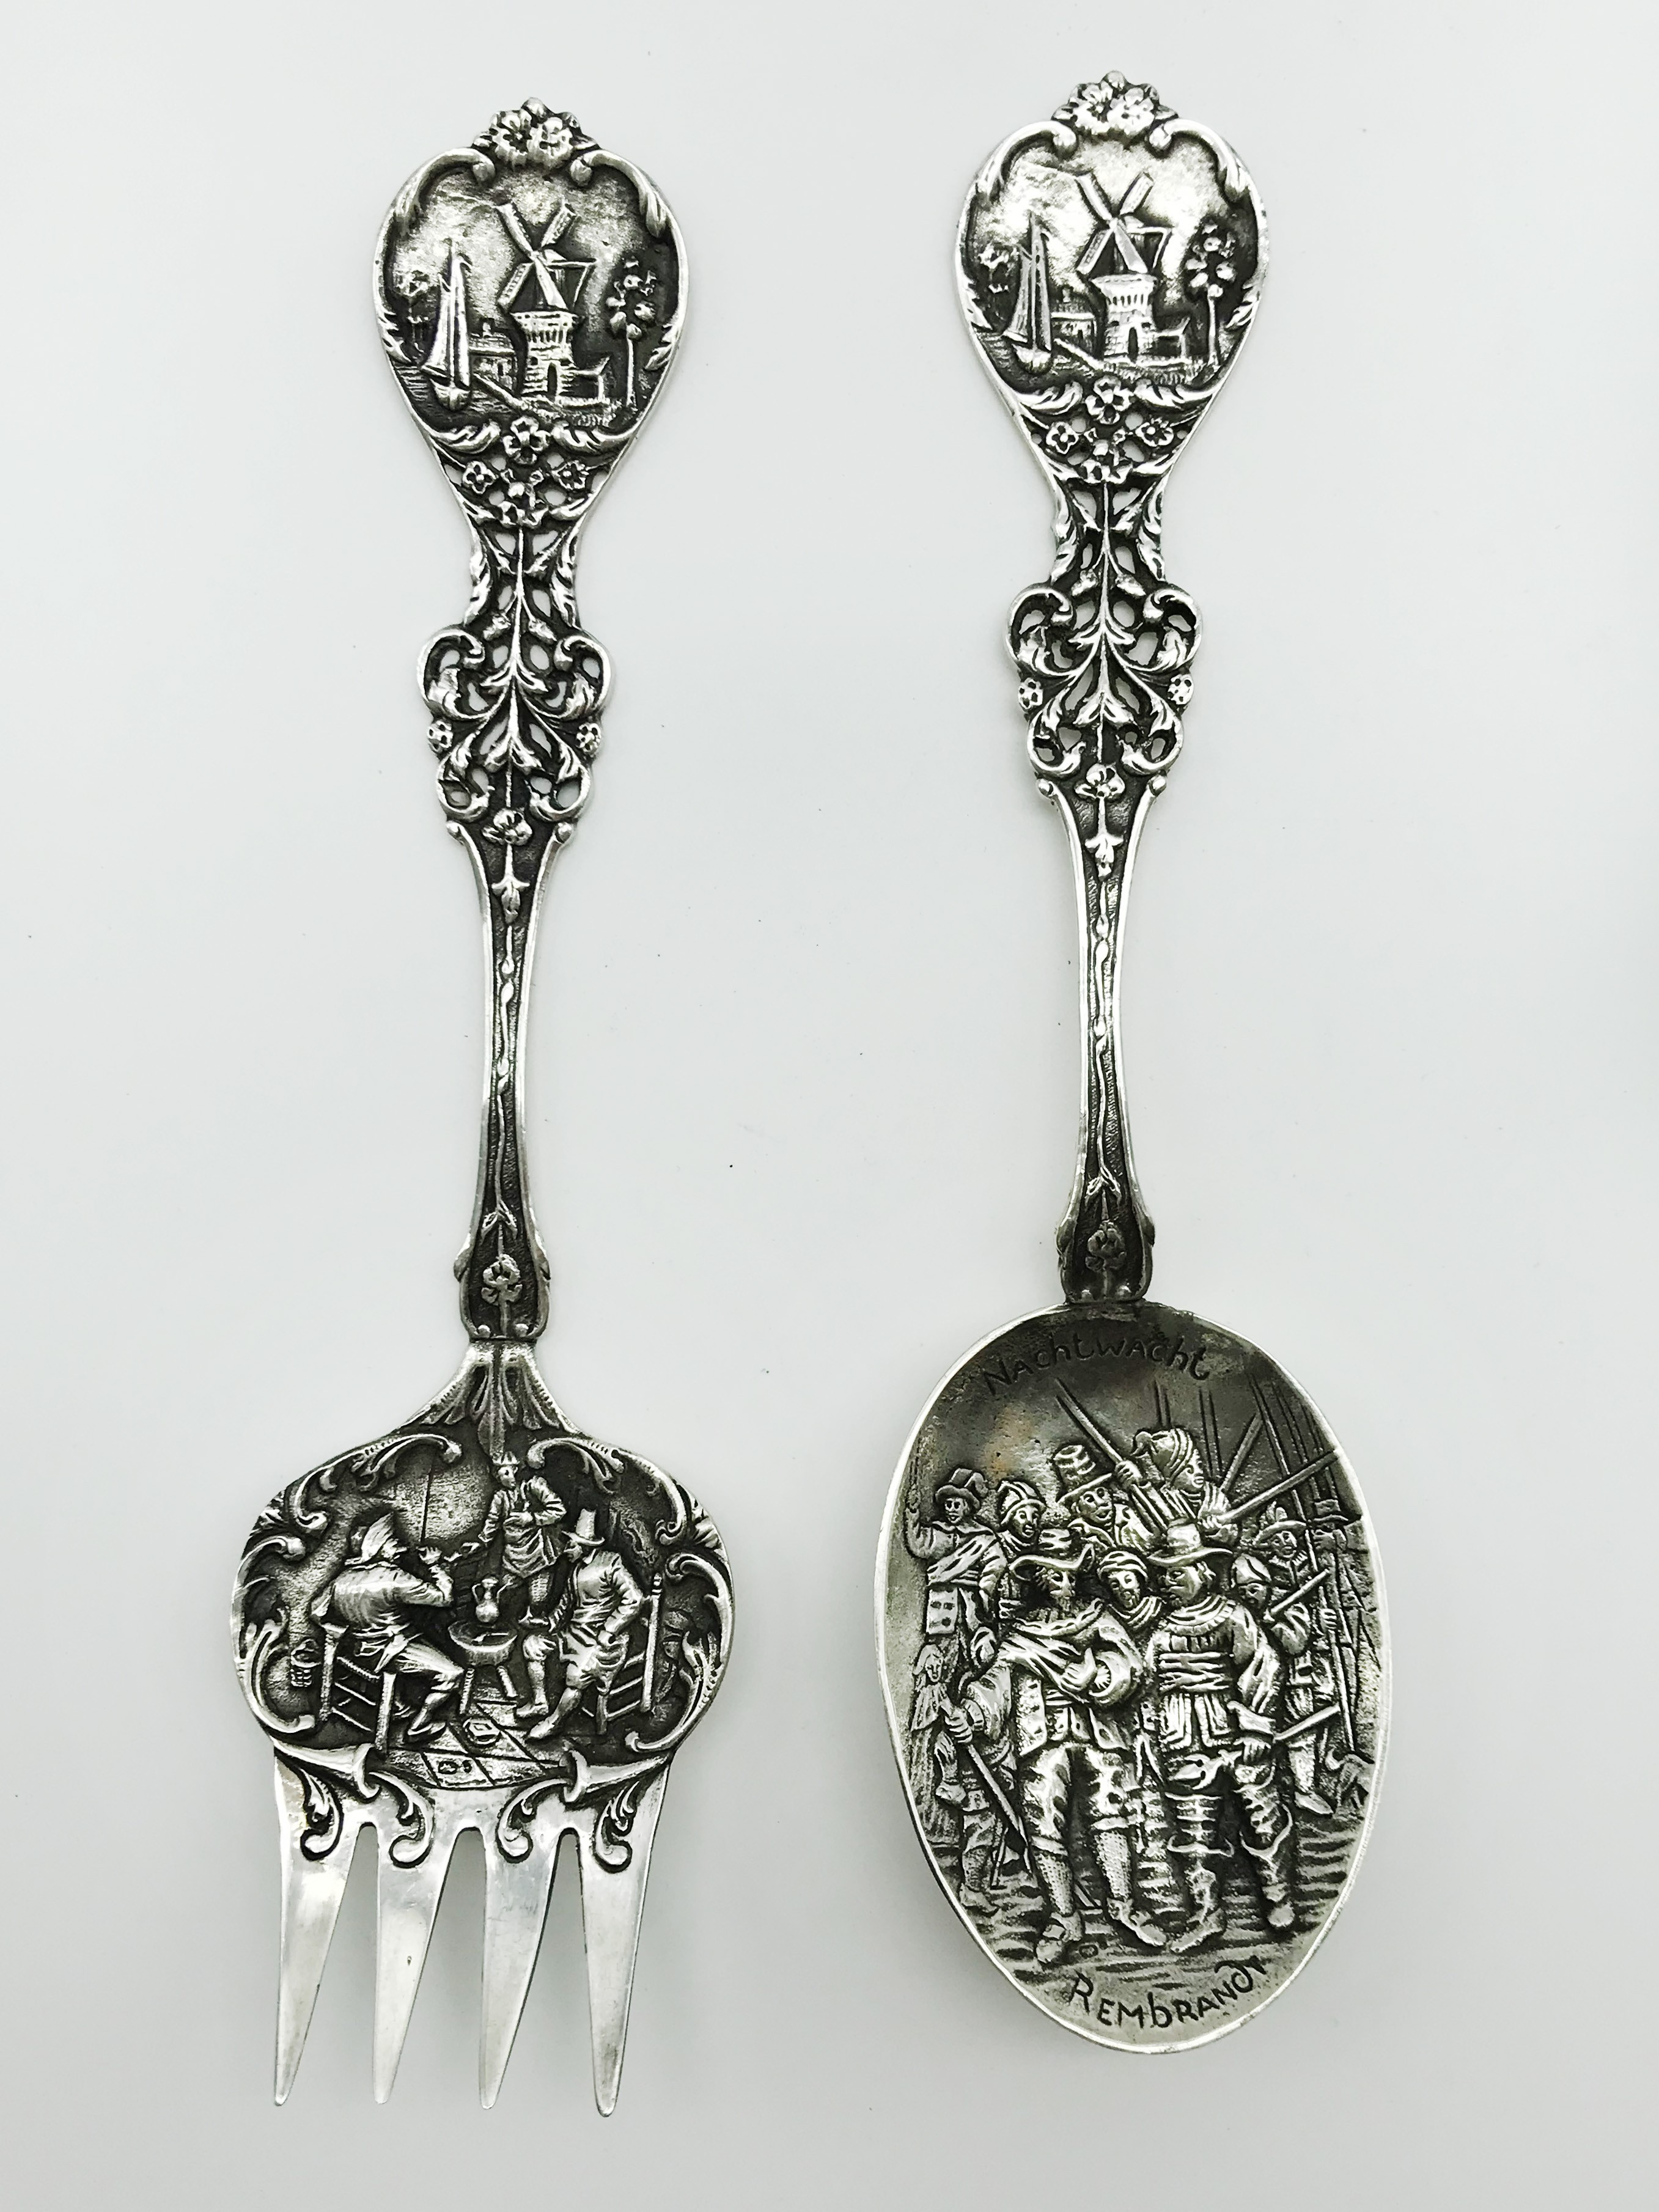 Lot 53 - PAIR OF SILVER DUTCH REMBRANDT SPOON & FORK